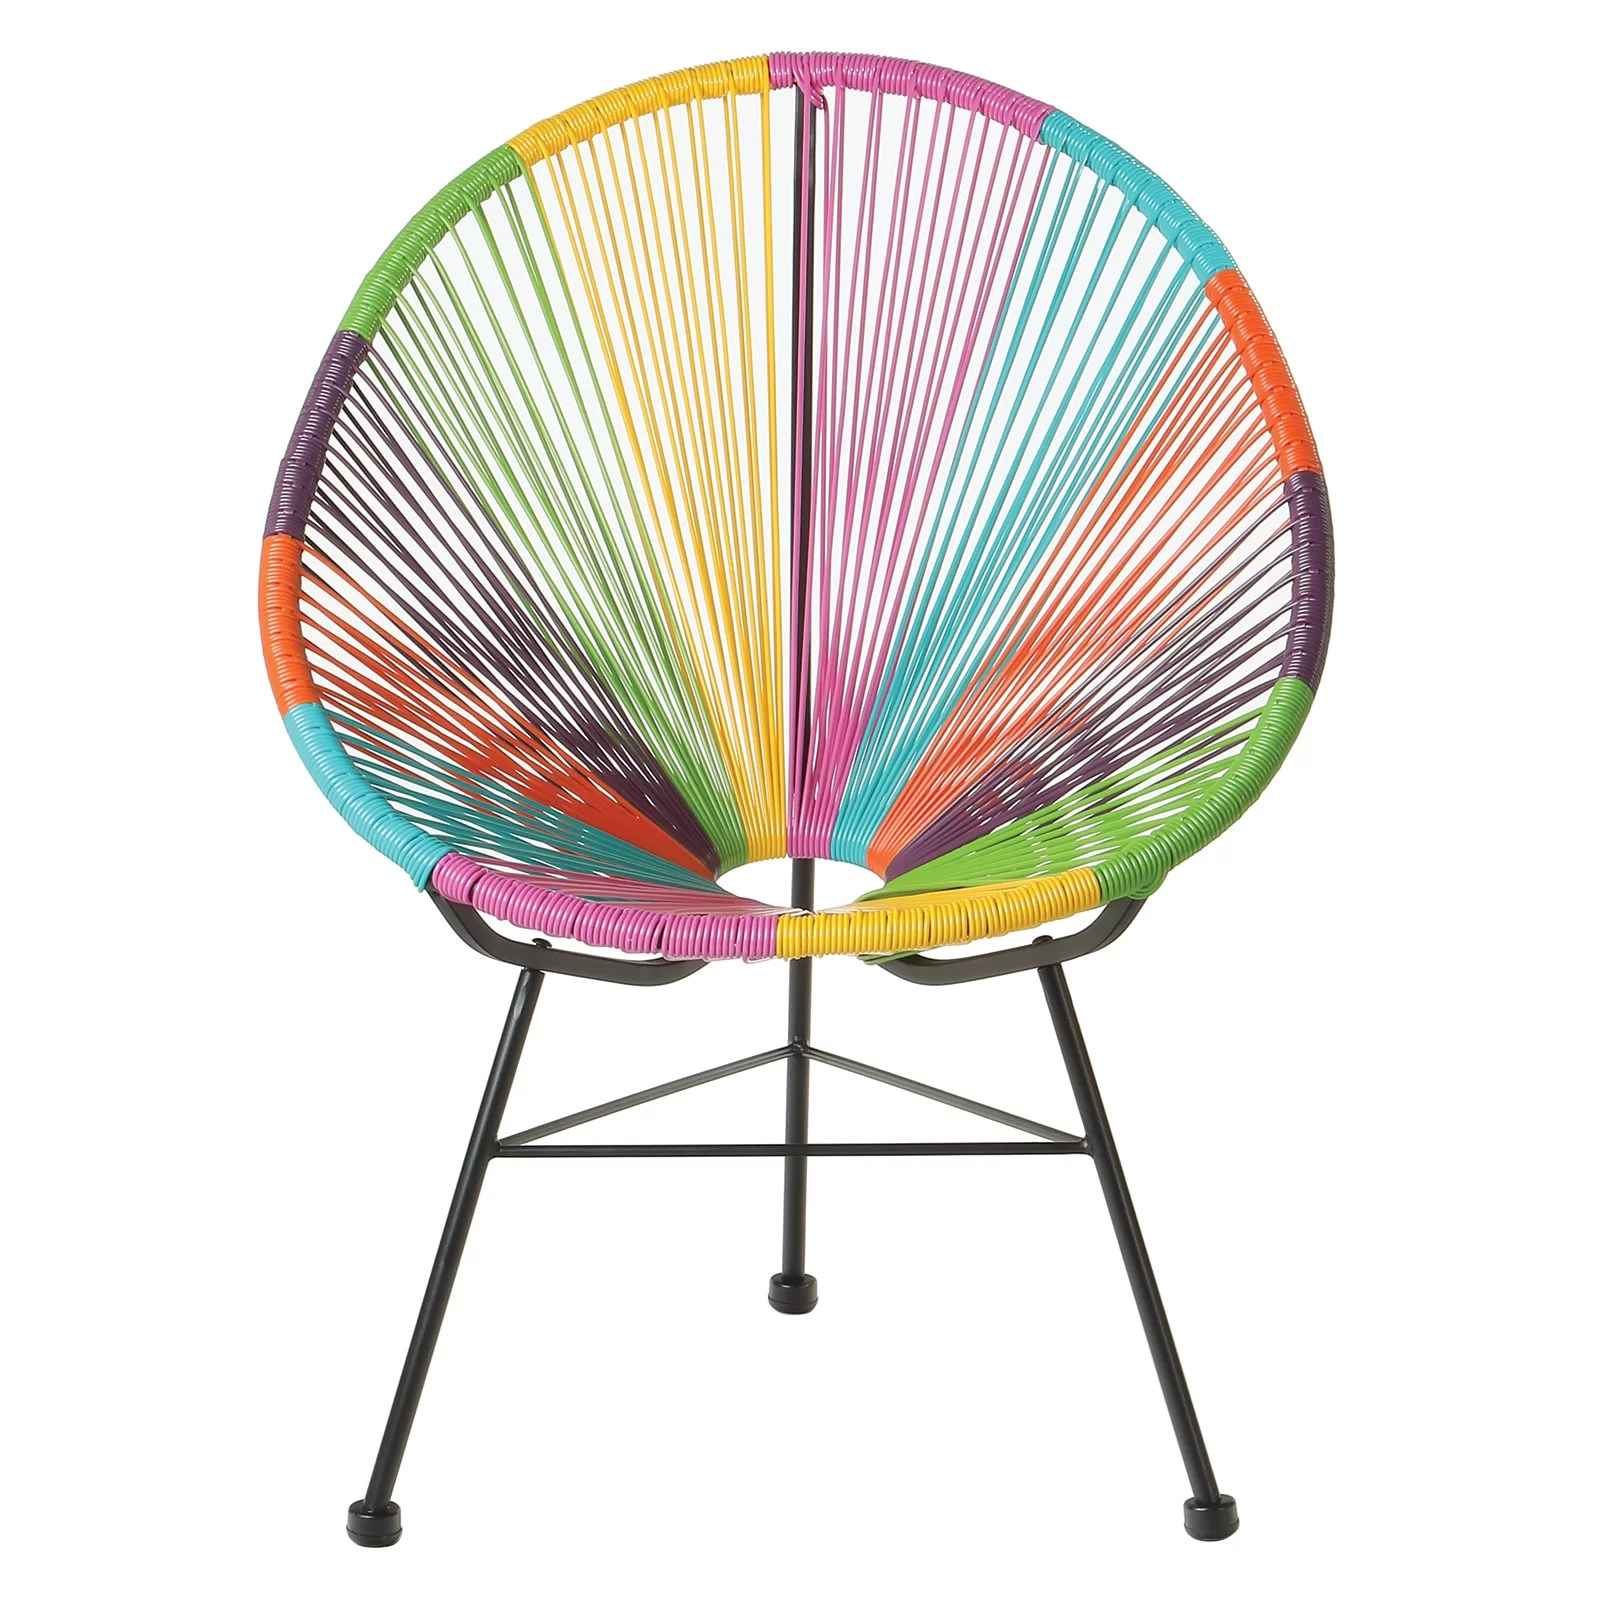 Acapulco Lounge Chair Polivaz Acapulco Lounge Chair And Reviews Wayfair